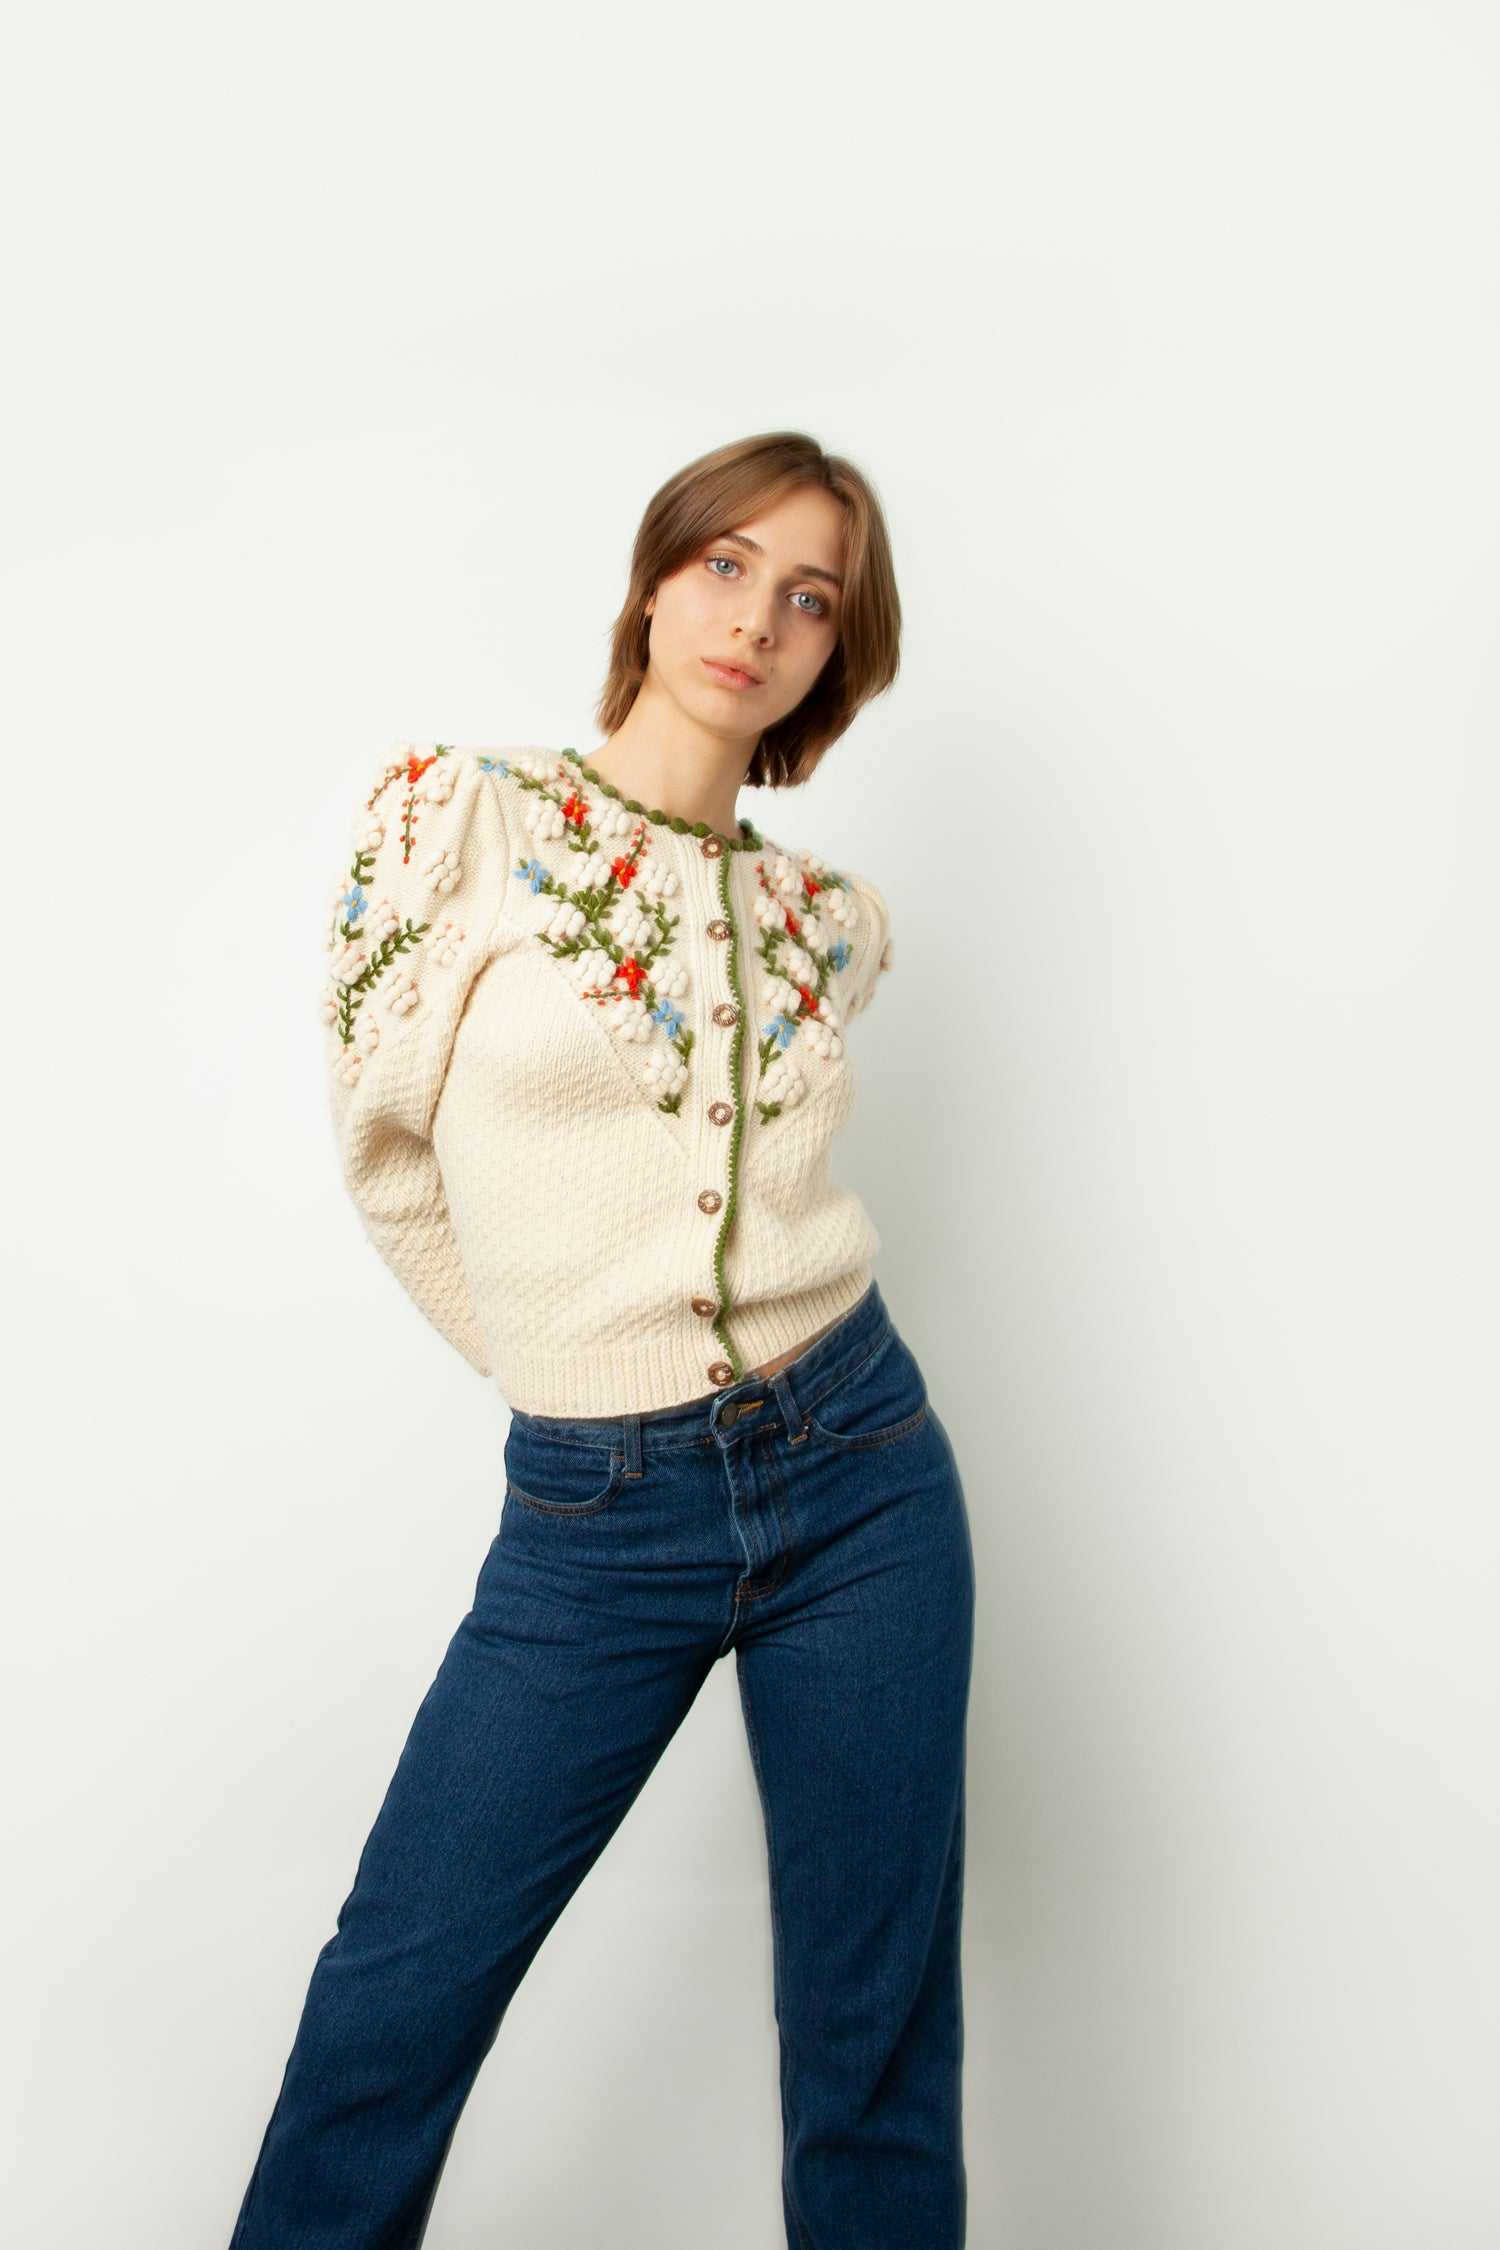 1950s HAND EMBROIDERED CARDIGAN